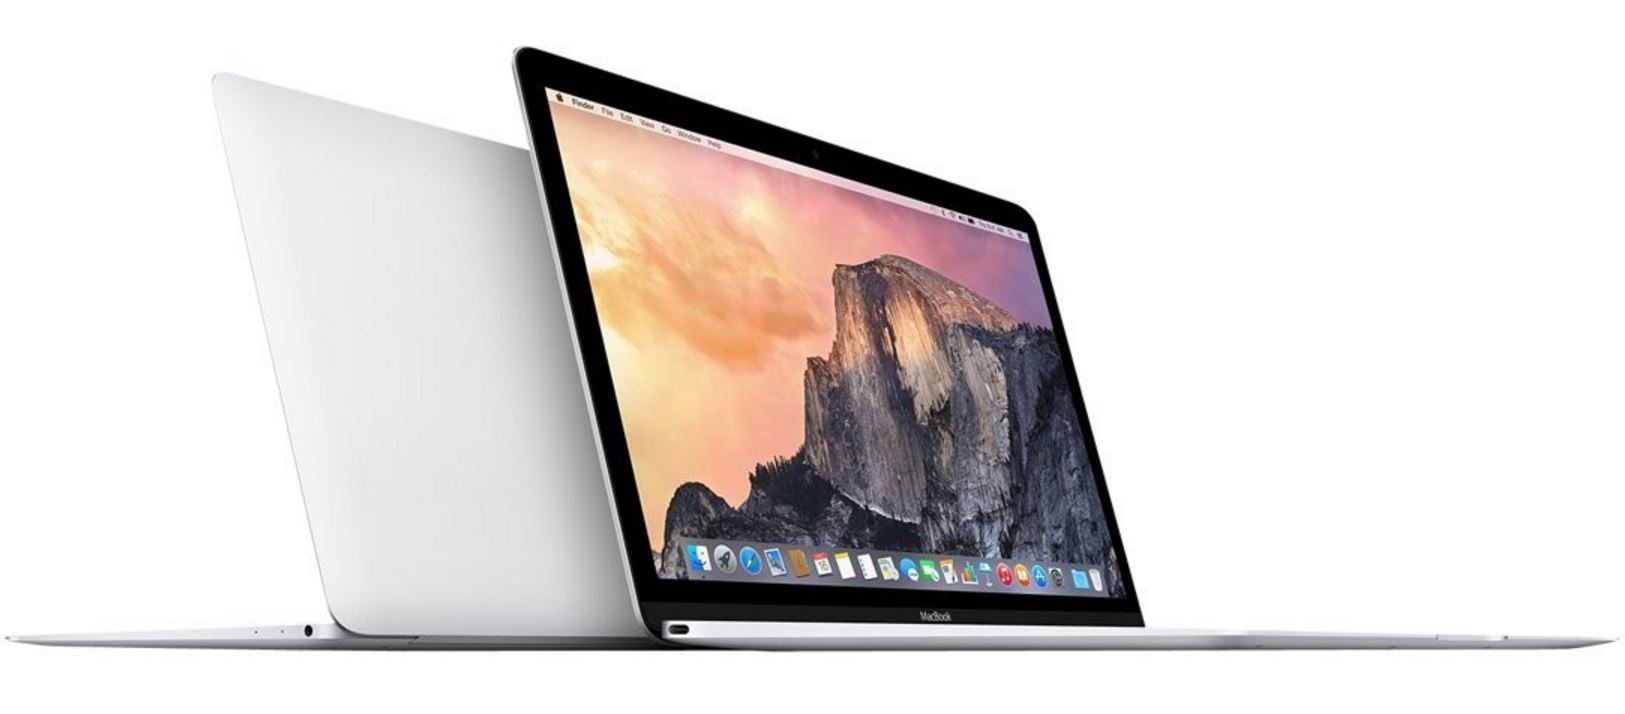 Apple MacBook 12-inch apple macbook 12-inch Apple MacBook 12-inch Review (2016) 2dbfbf15b6444d3be33a4a9ec90b0ef4